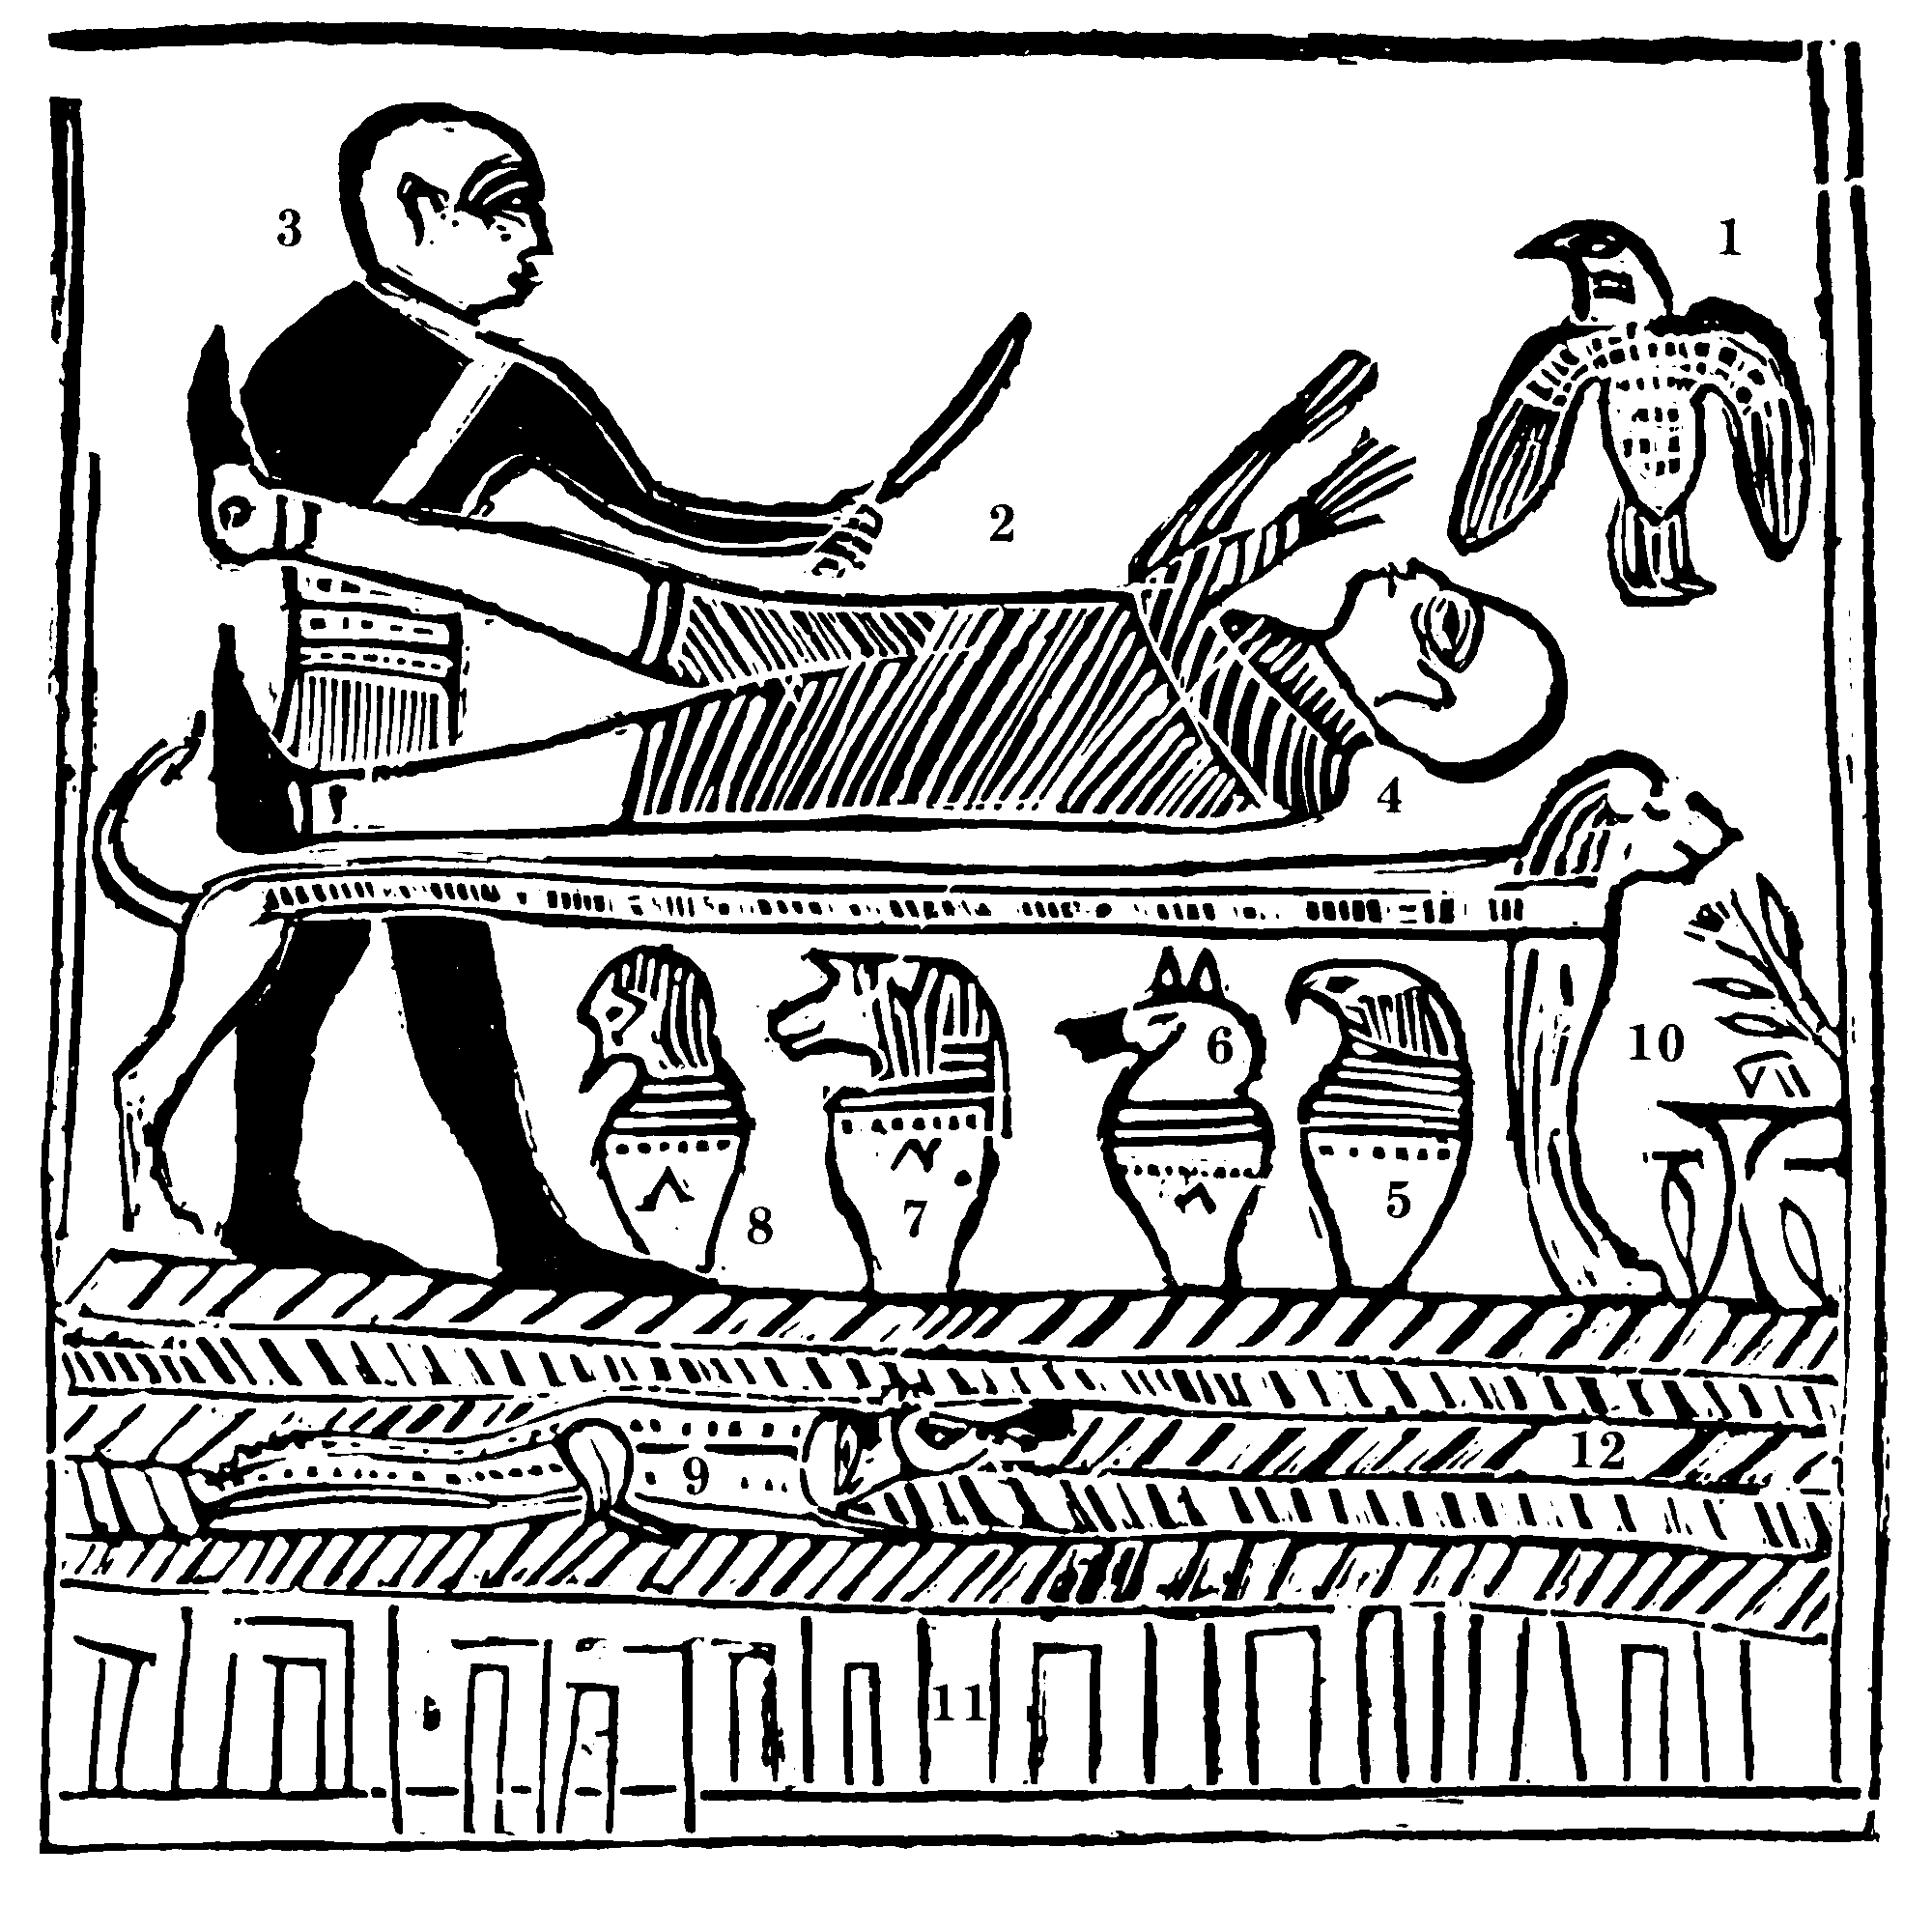 The book of Abraham facsimiles in high resolution